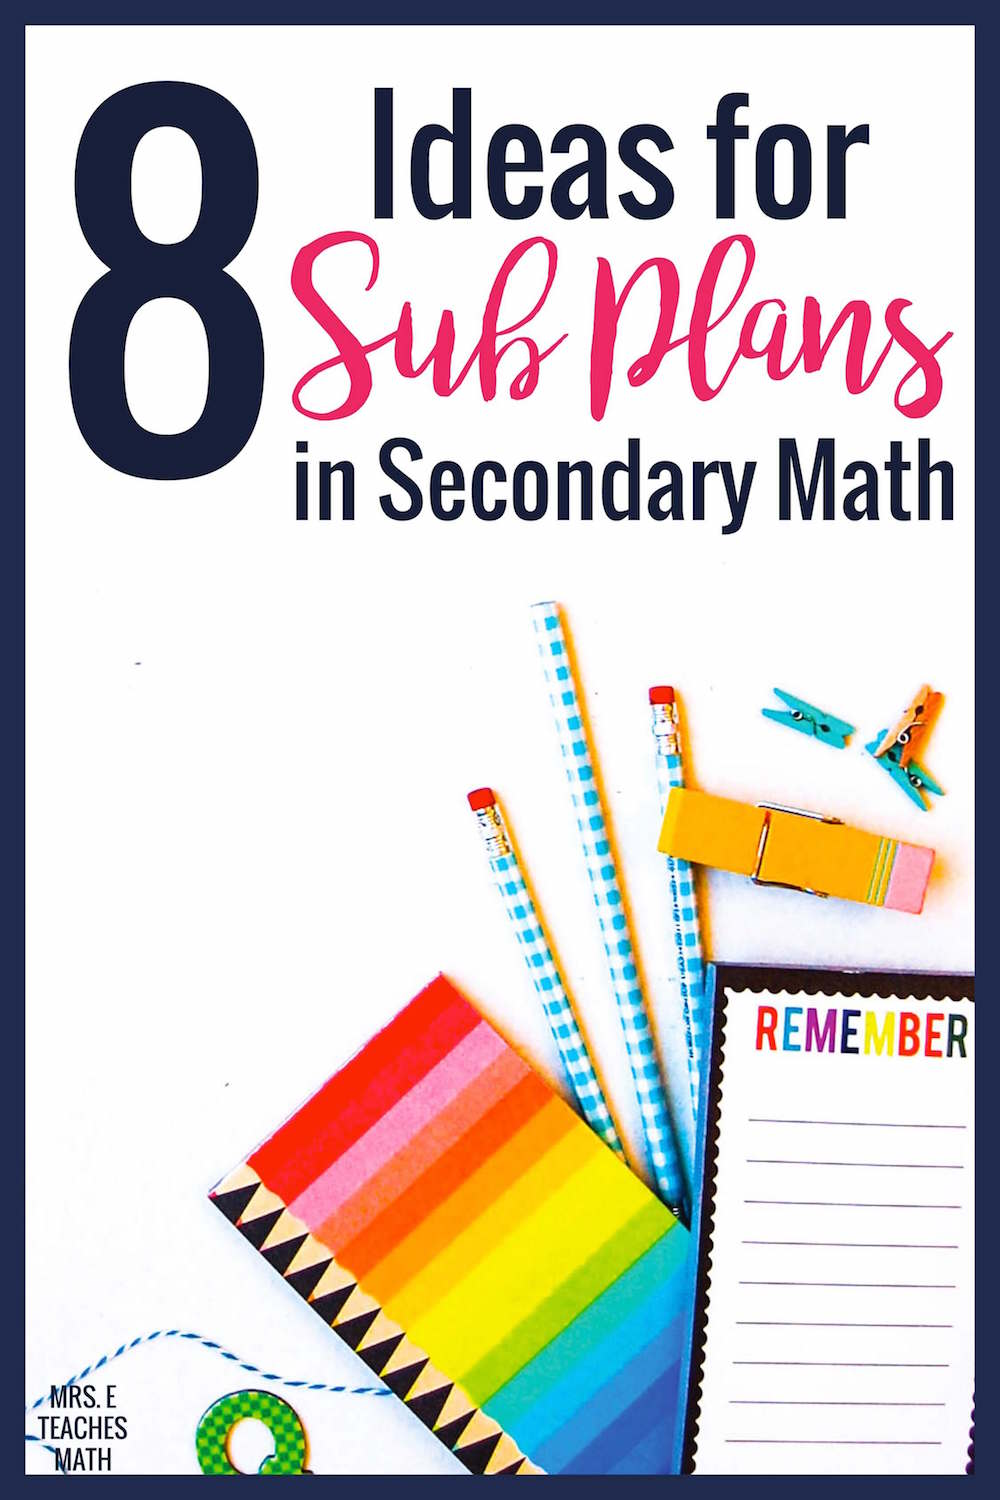 medium resolution of 8 Ideas for Sub Plans in Secondary Math   Mrs. E Teaches Math